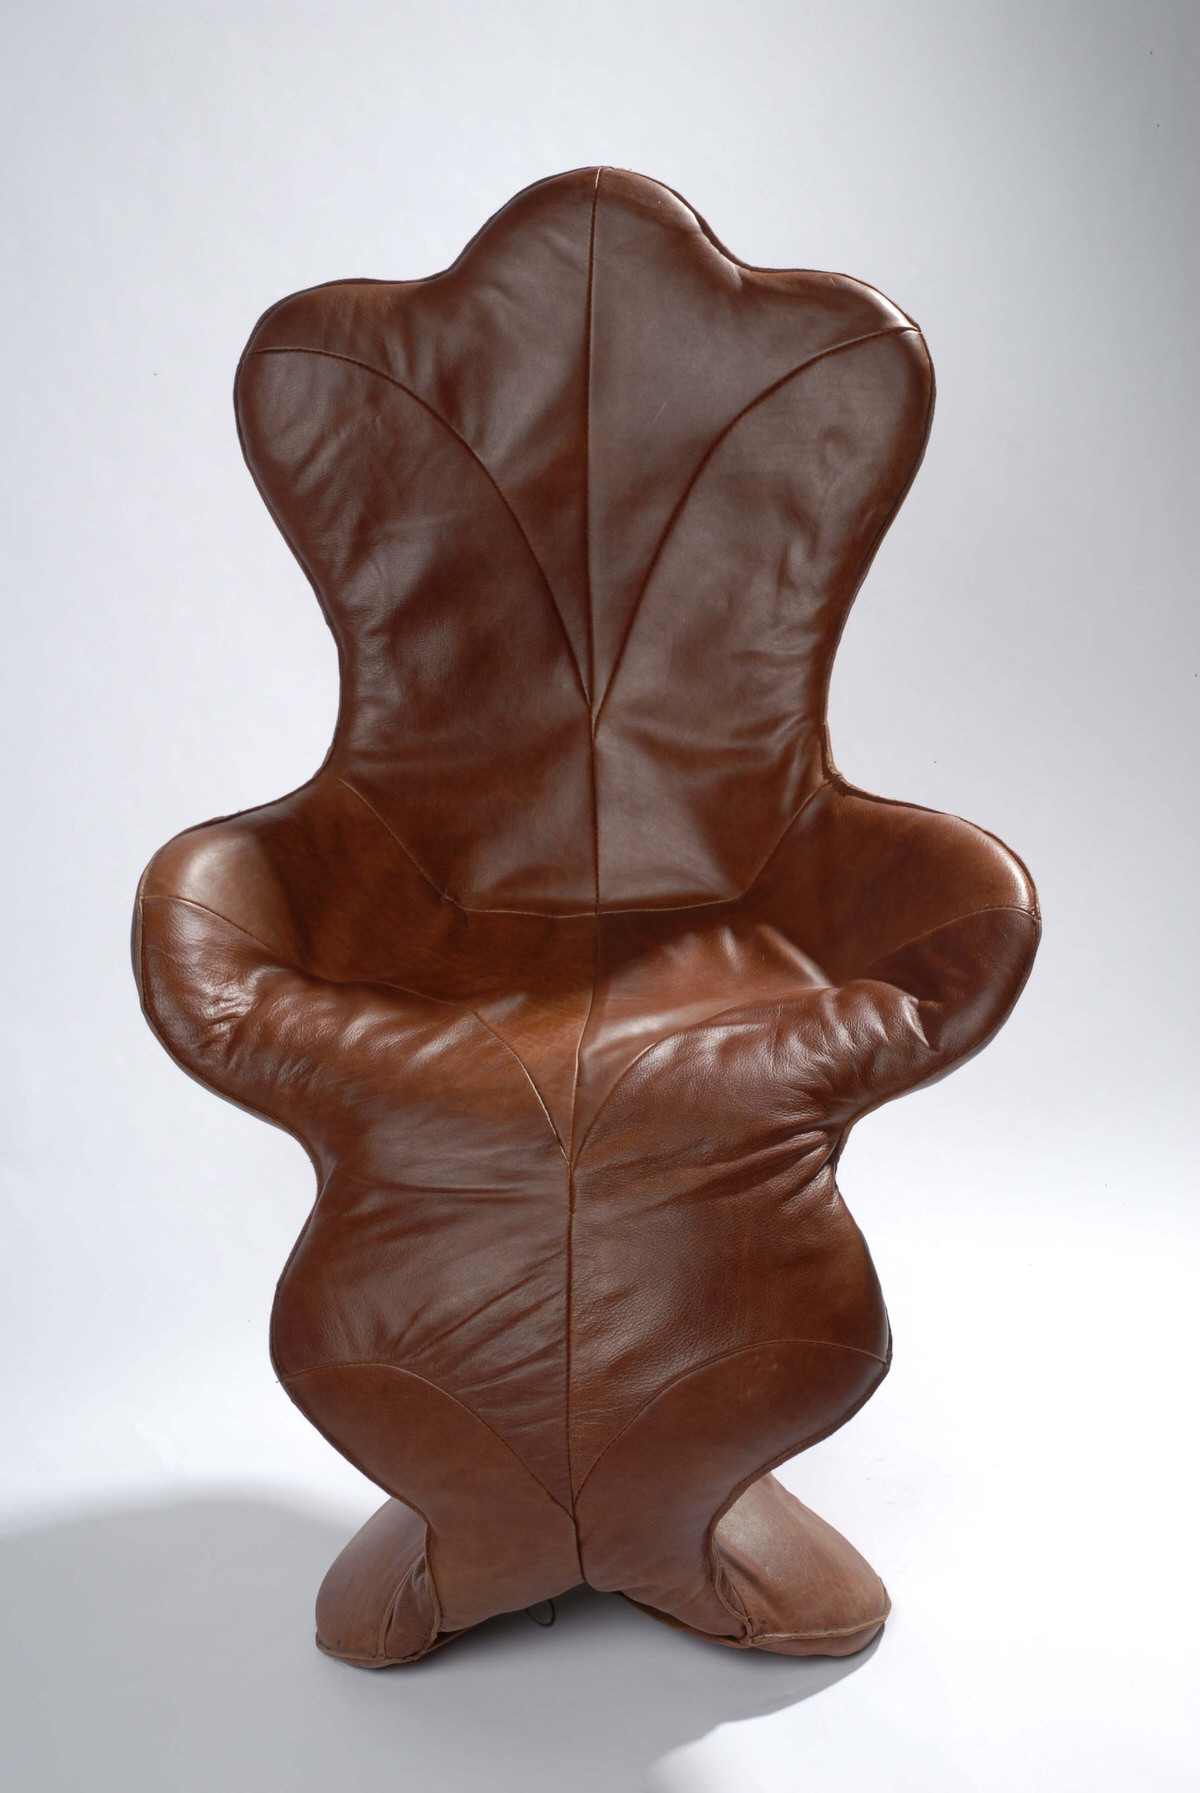 Oak Leaf designer leather occasional chair interior designers and specifiers Maison de Object by Mark Reed